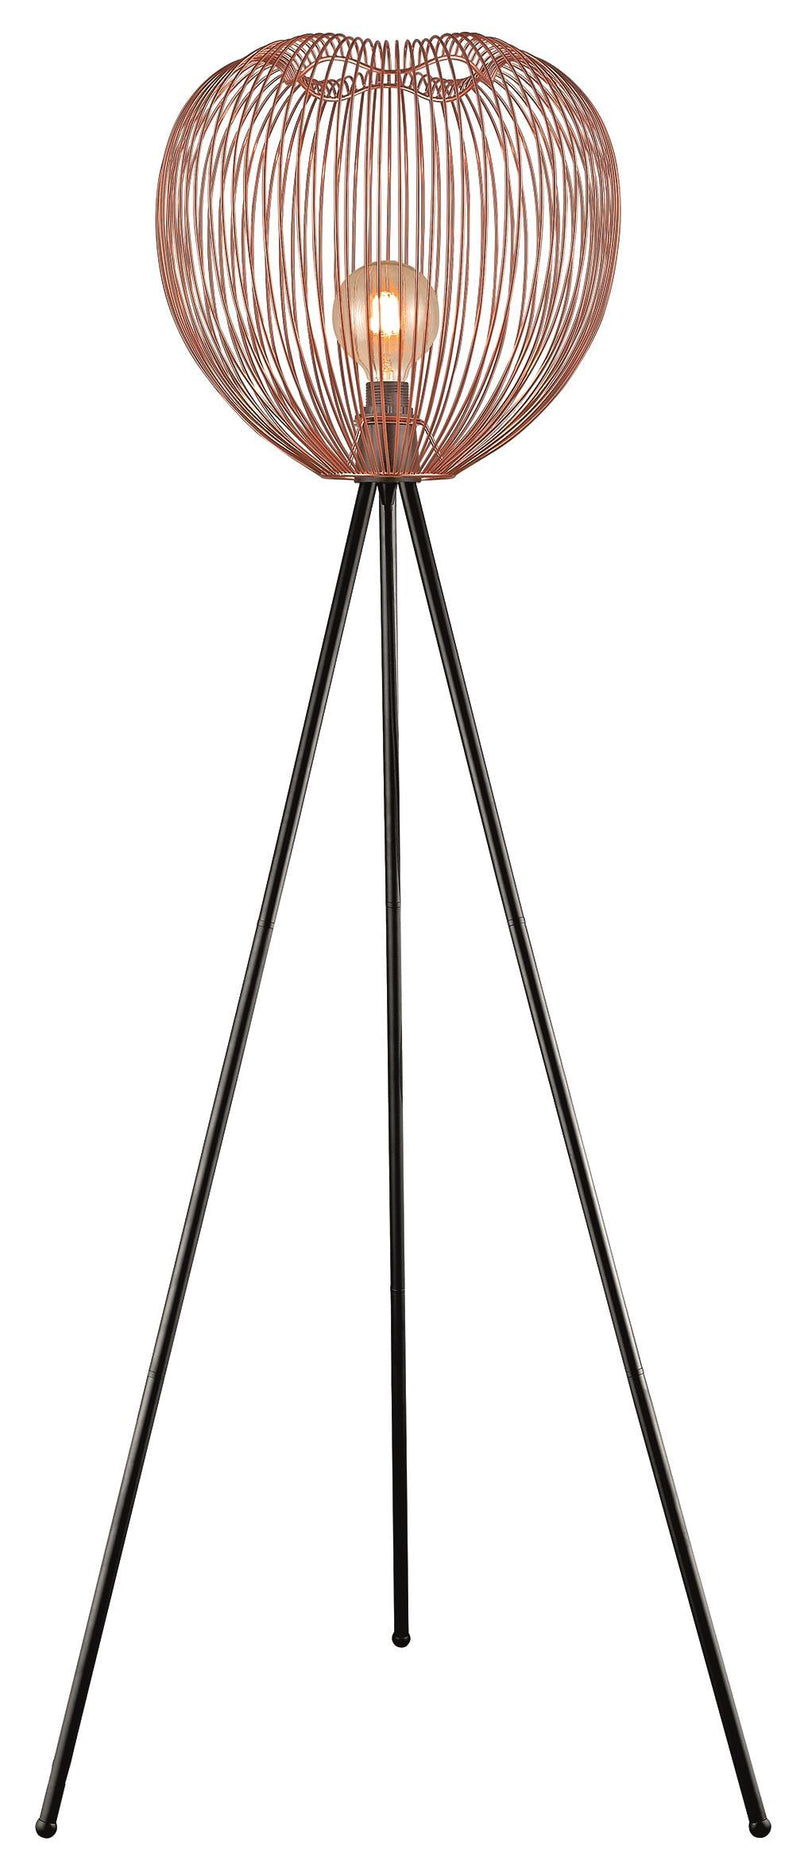 SND Lighting SND180 Dally Floor Lamp Copper - SND Electrical Ltd